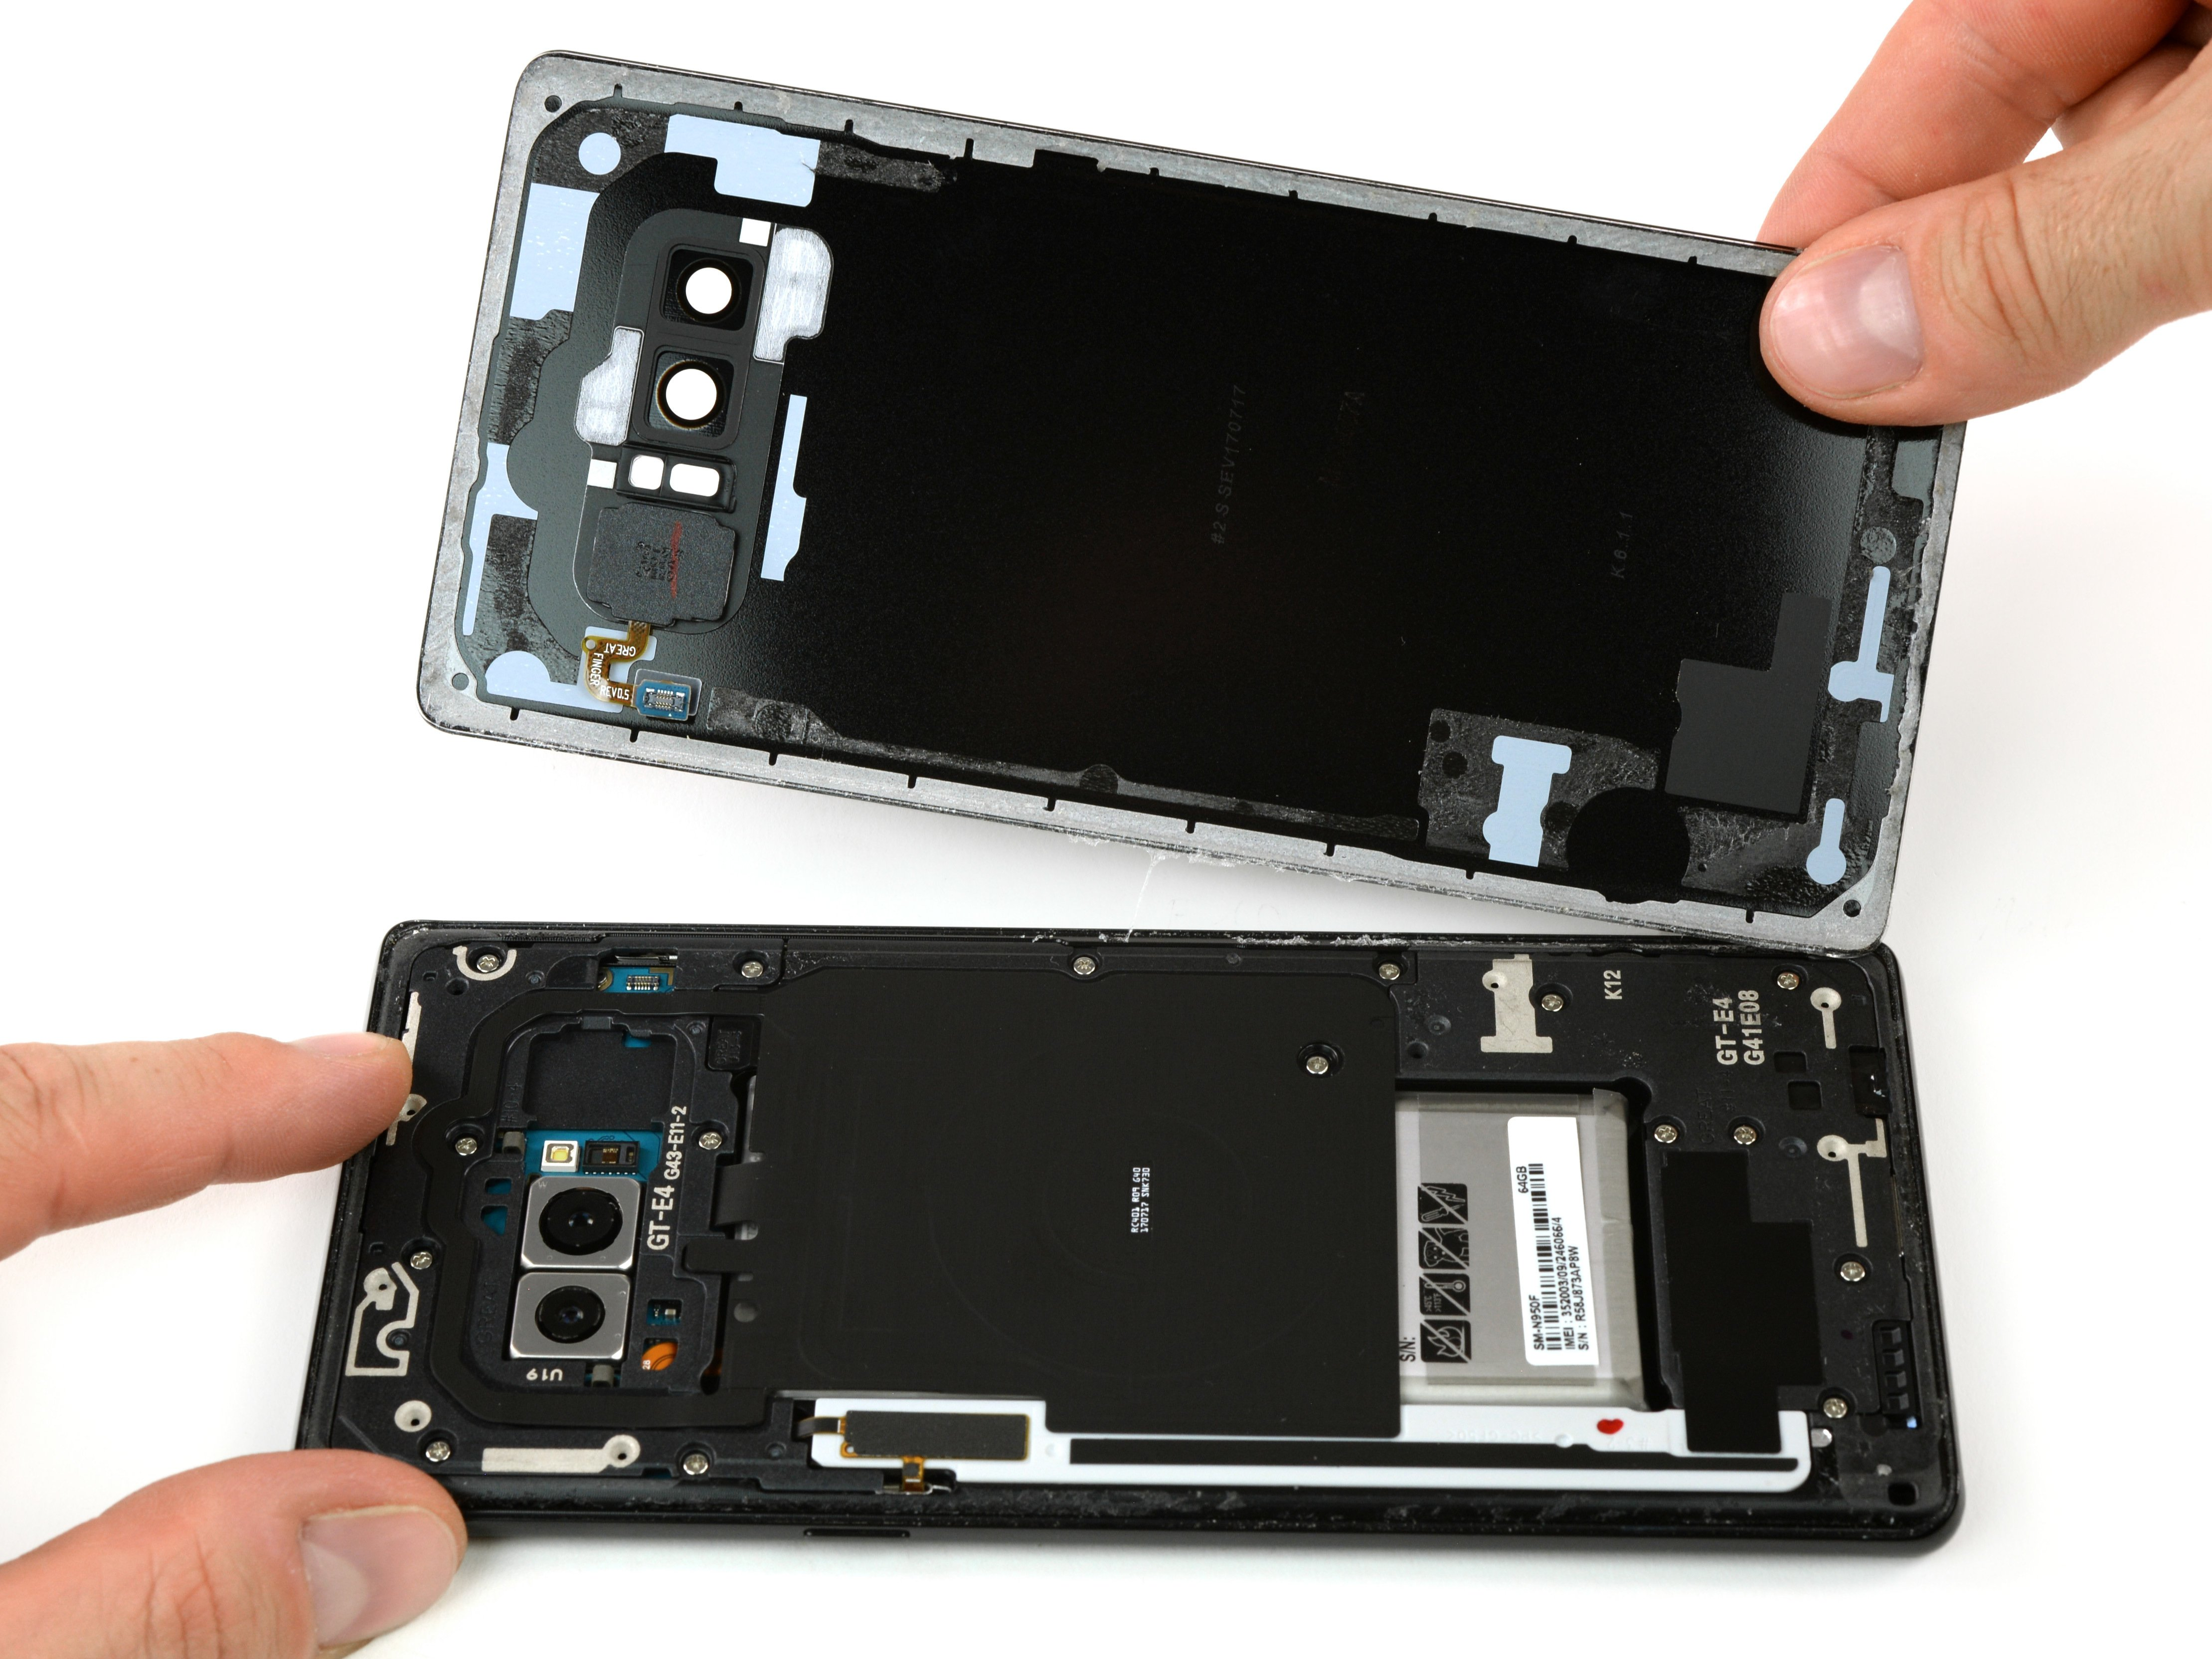 Samsung Galaxy Note8 Back Cover Replacement - iFixit Repair